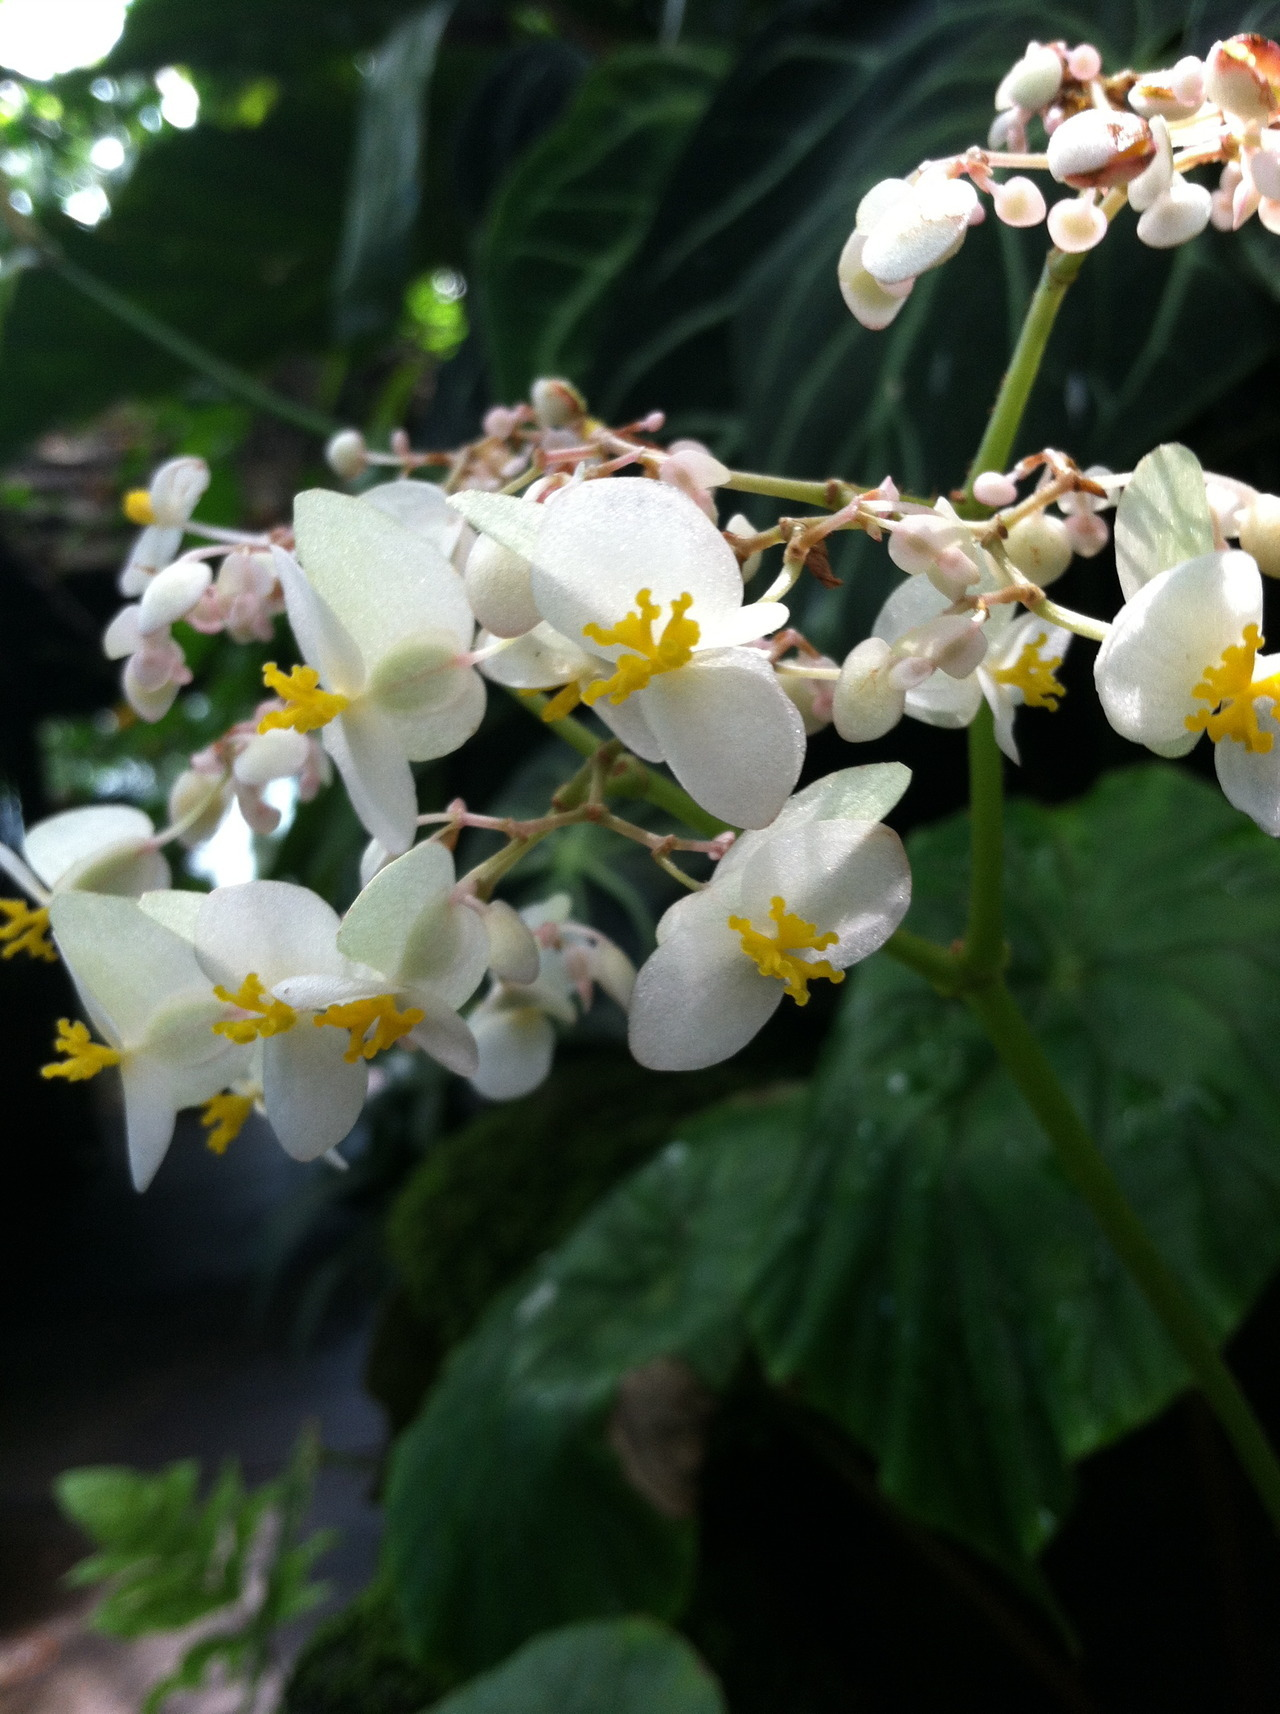 This is Begonia nelumbiifolia, a member of the Begoniaceae family. All members of the Begonia family are in the Begonia genus except for the single species in Hillebrandia. Begonias are popular as houseplants, because many of the species have colorful, impressive leaves. Photo by me.